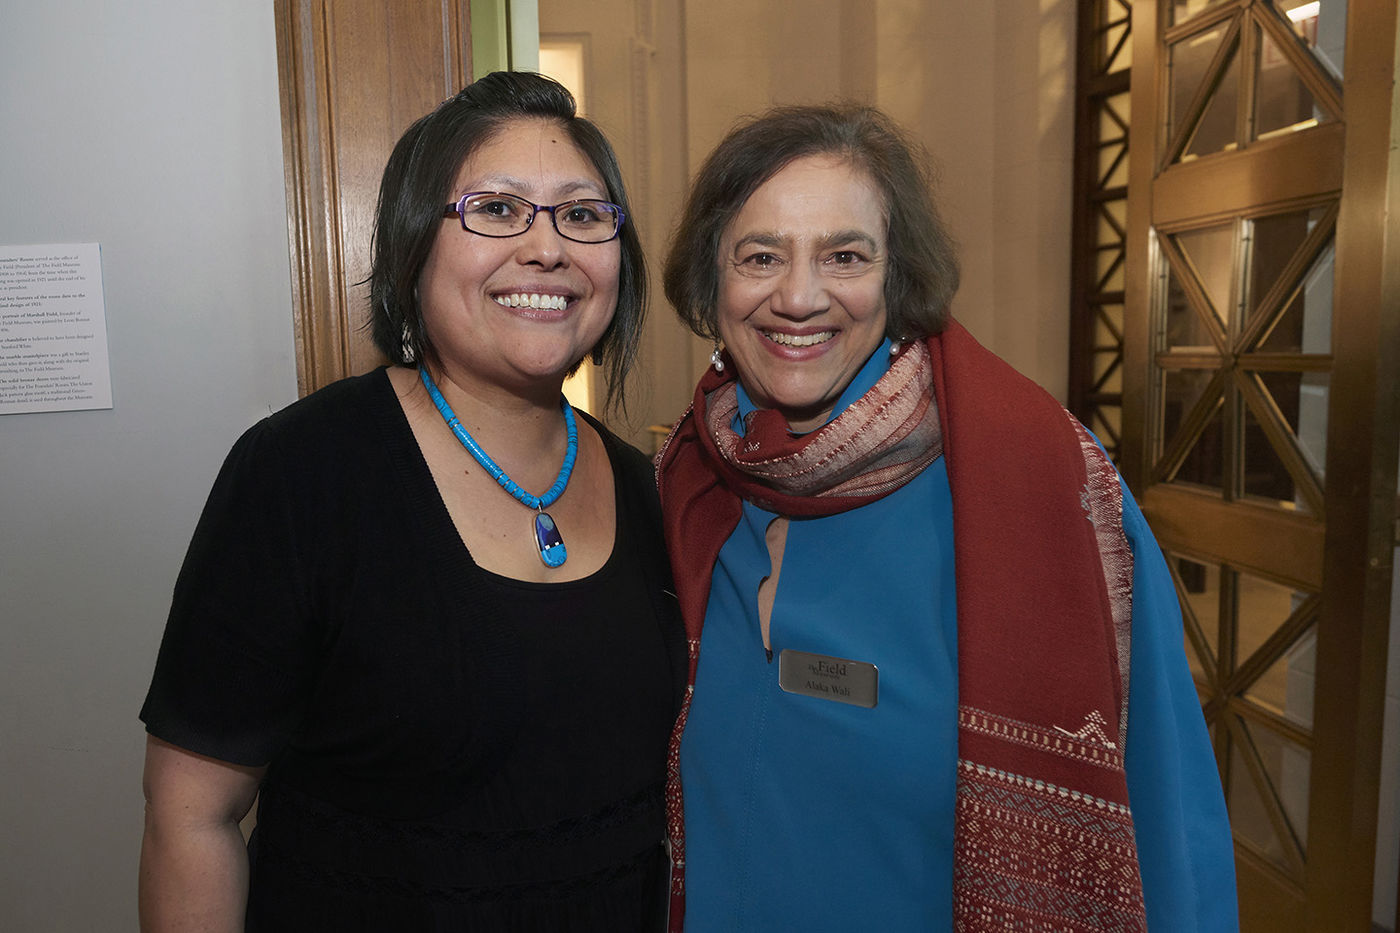 Two women stand next to each other and smile at the camera. One wears black with a blue necklace and glasses, and the other wears blue with a red scarf. An ornate brass door is visible behind them.